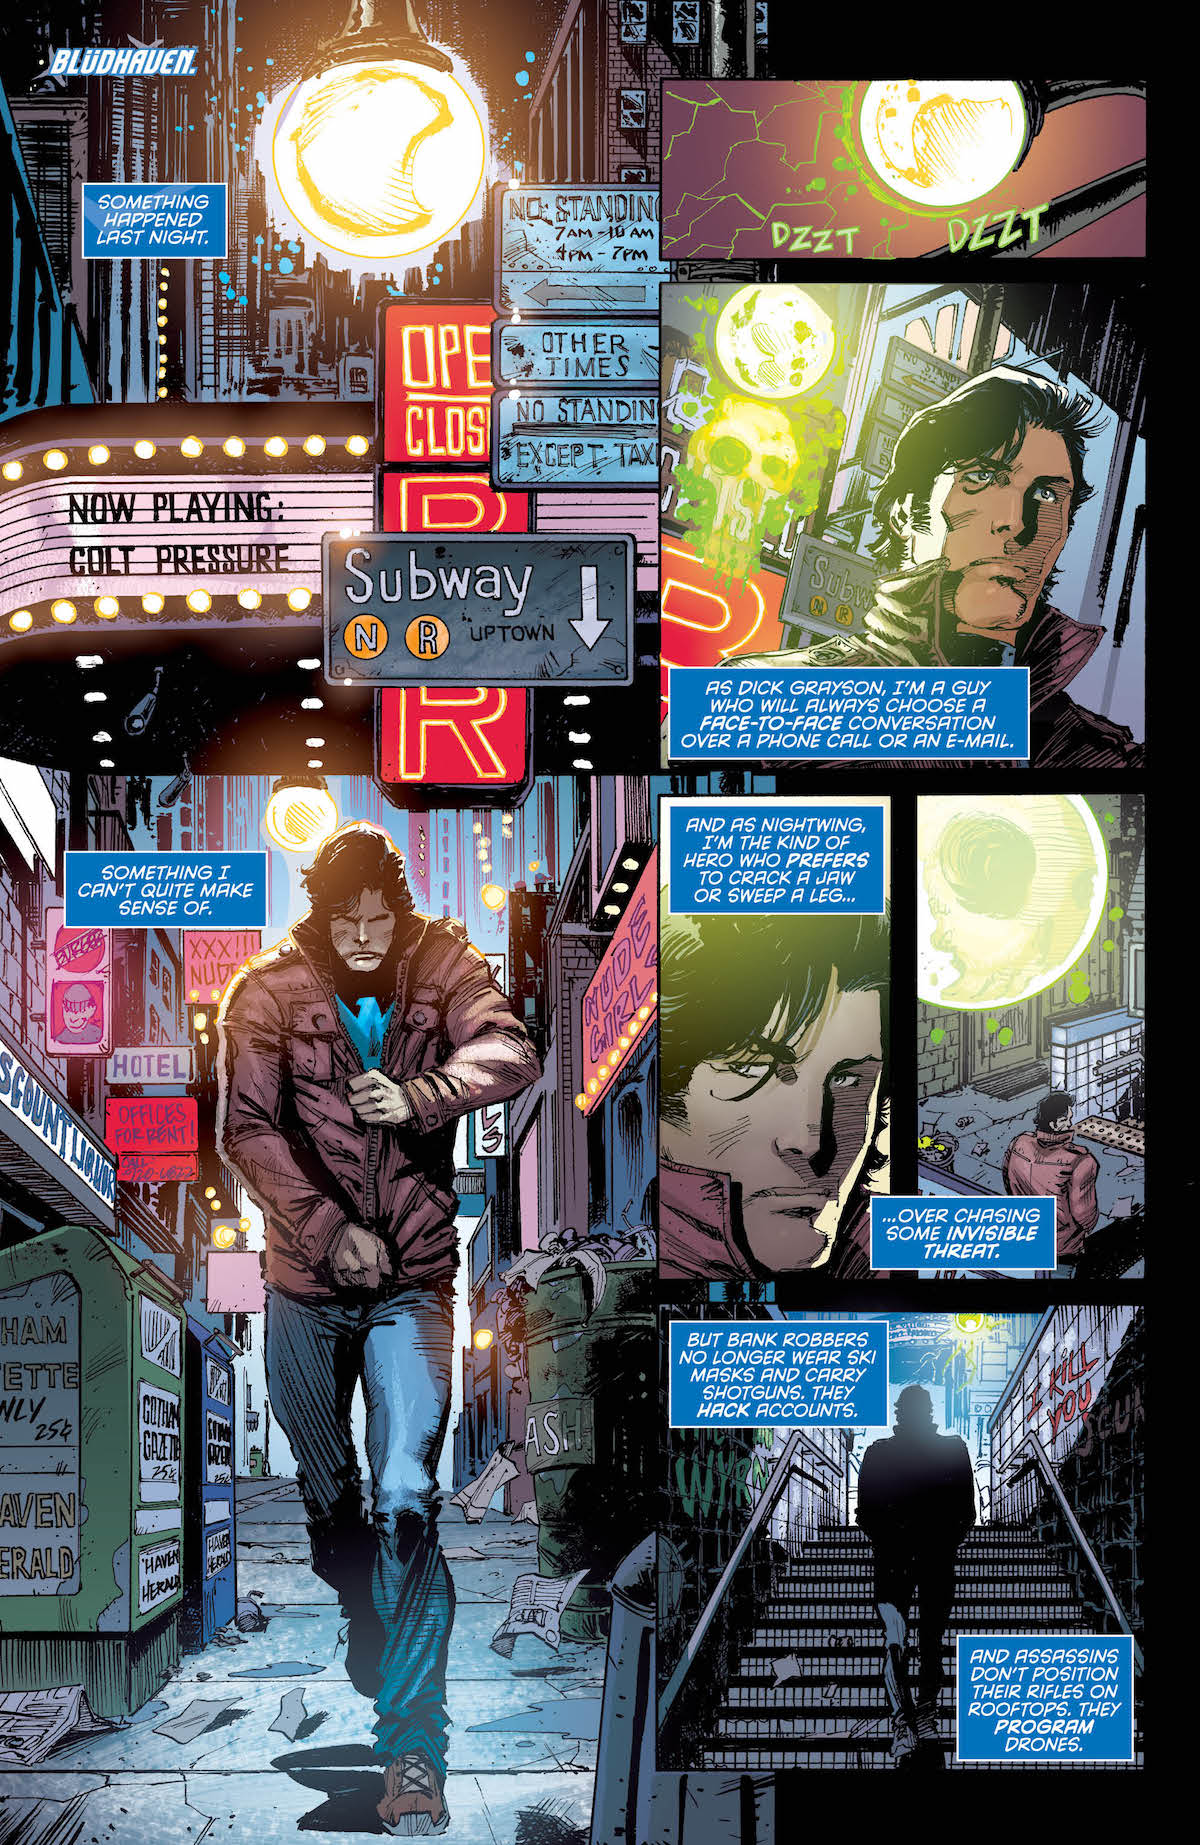 Nightwing #44 page 1